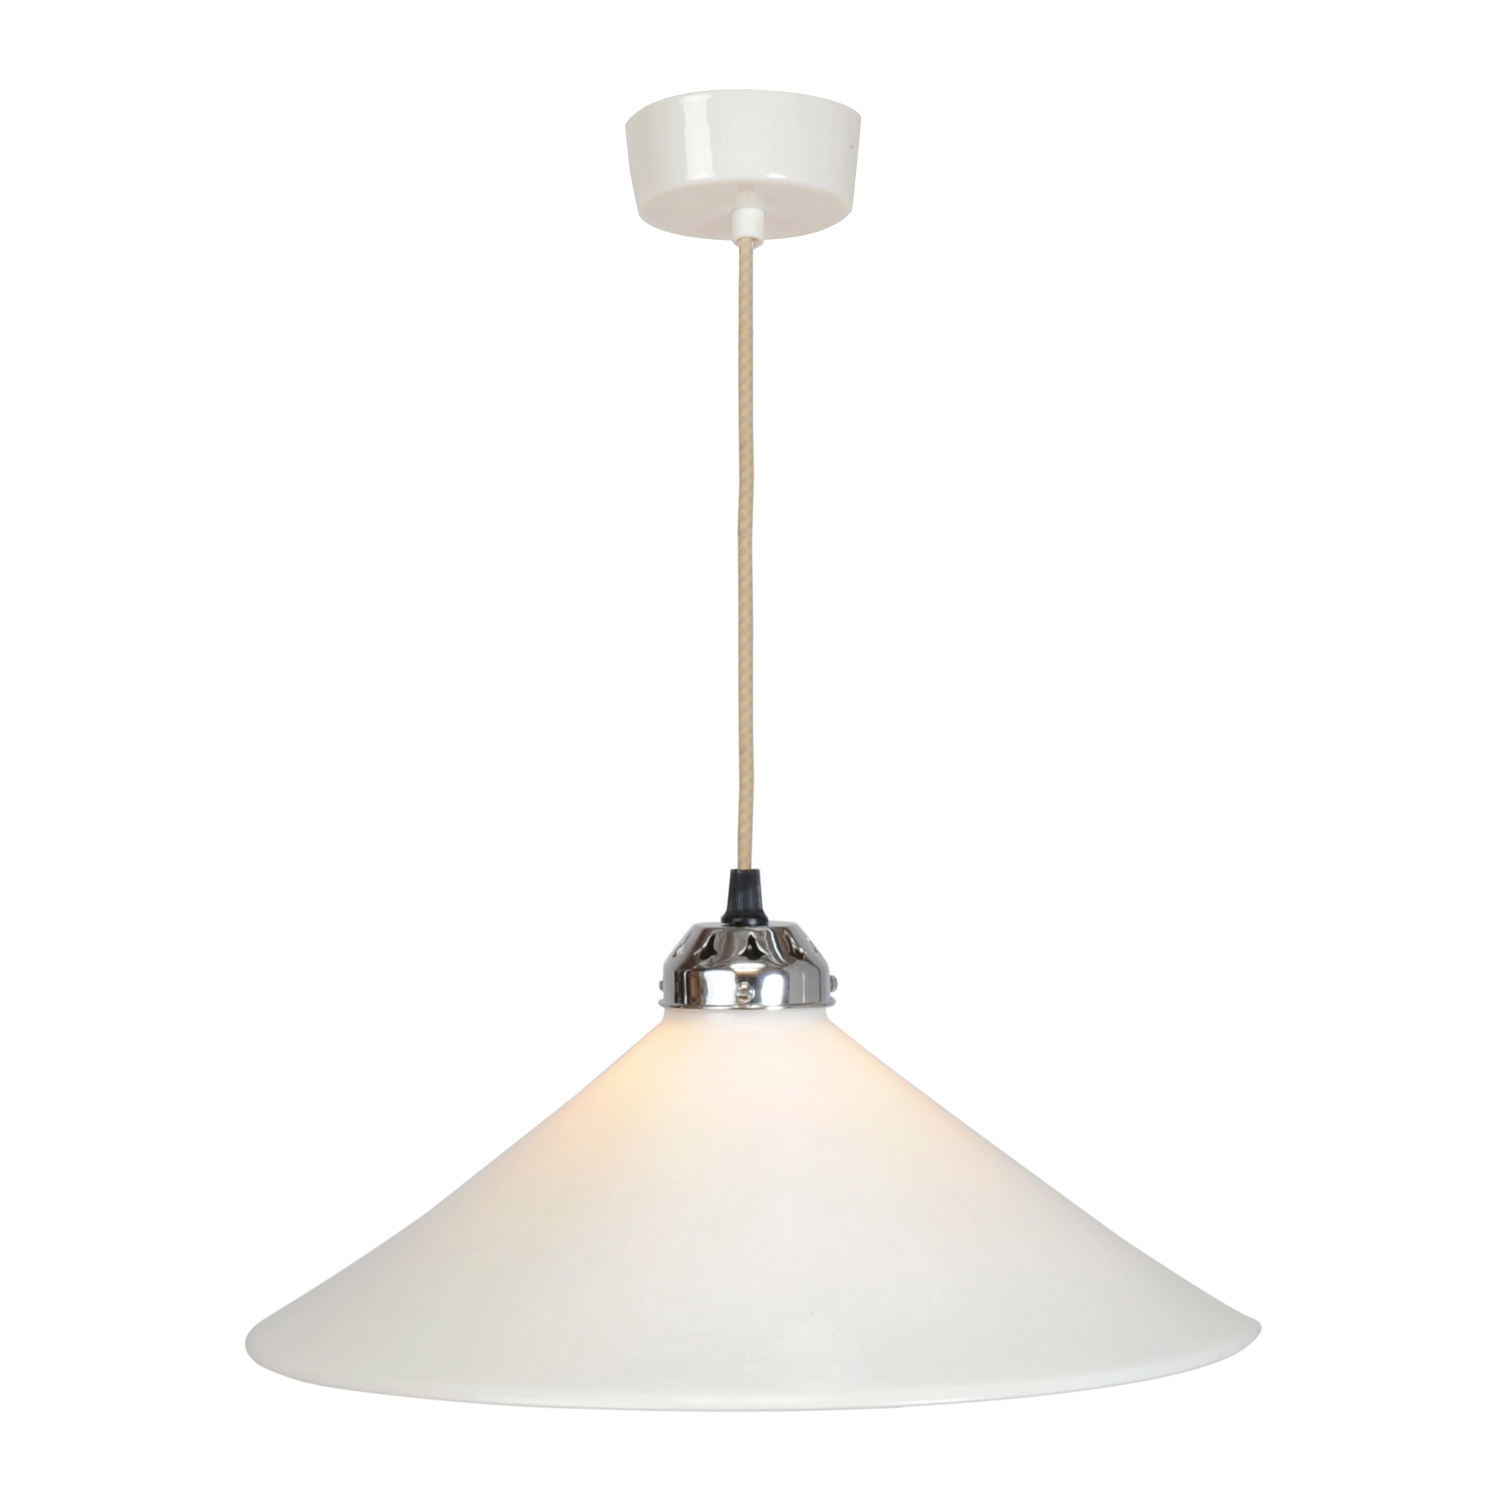 Cobb Large Plain Pendant Light, White